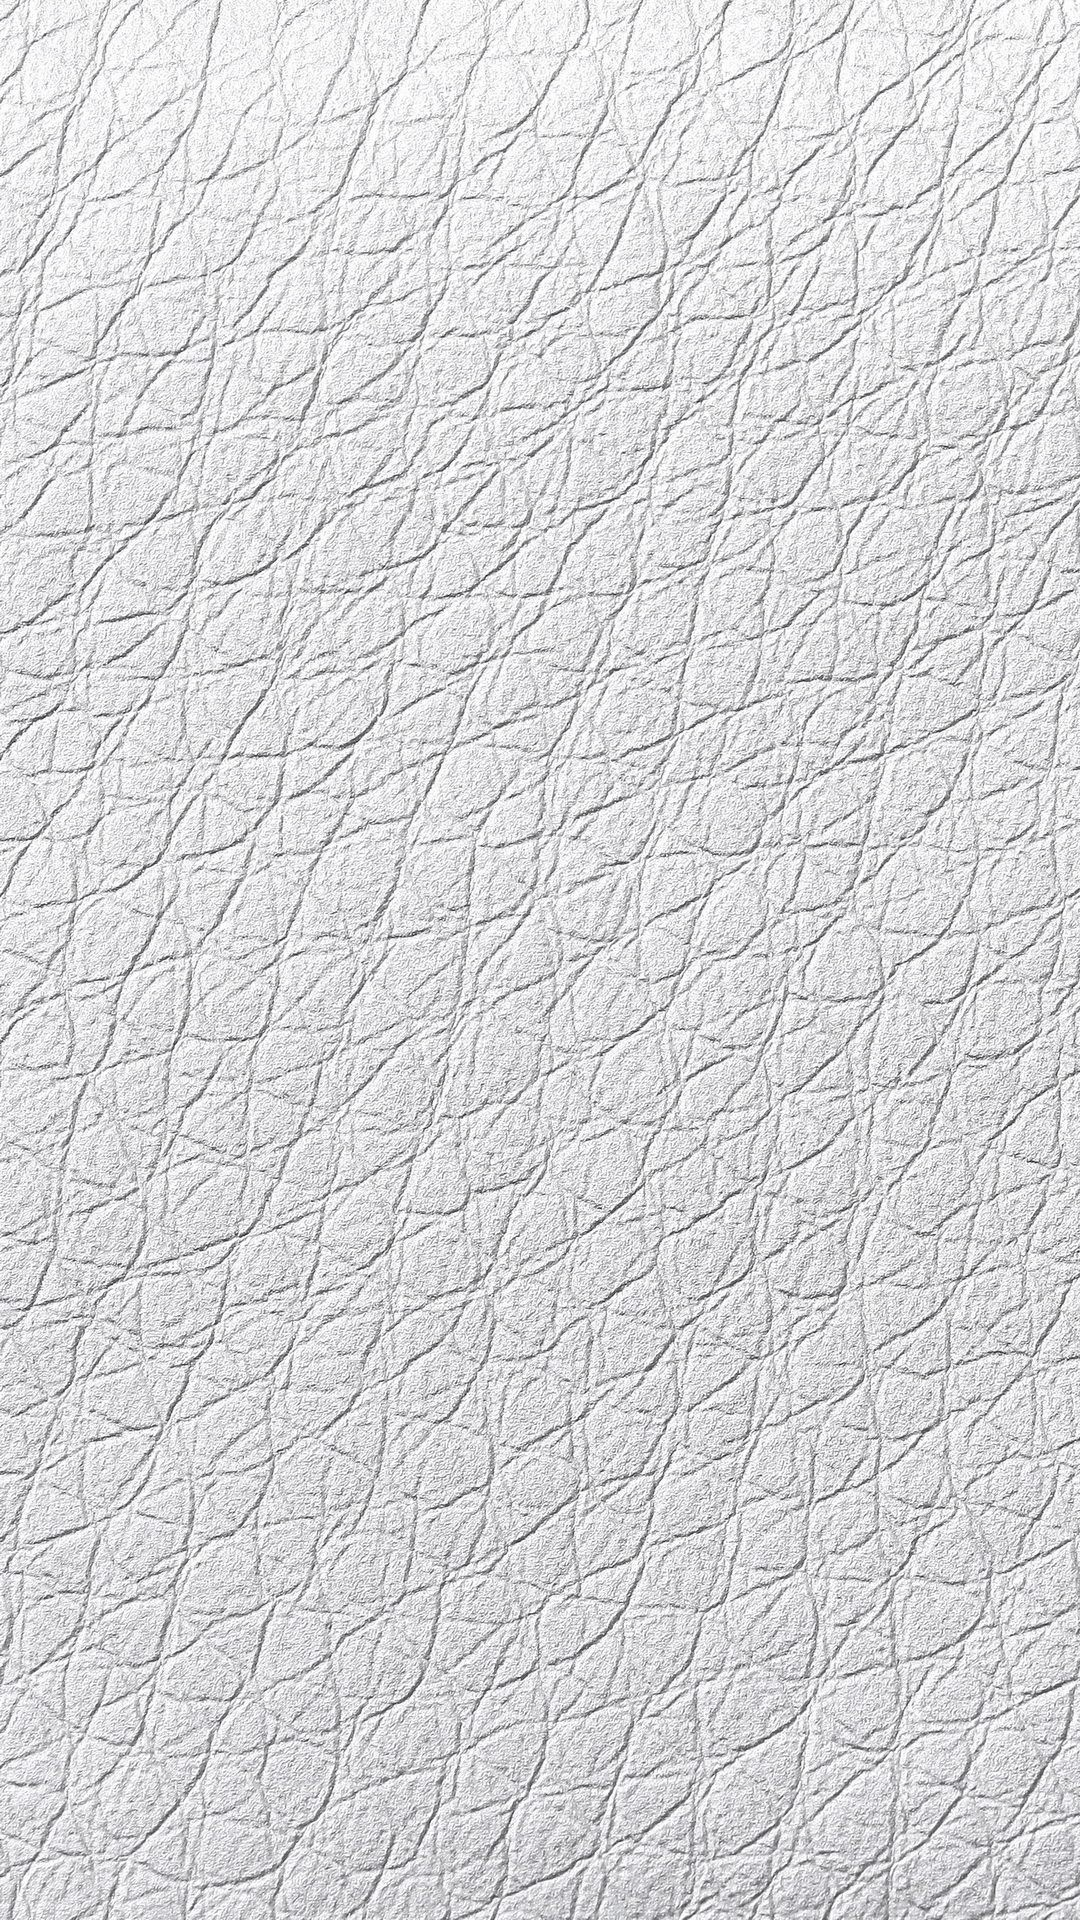 White Leather iPhone 6 Plus Wallpapers   background design iPhone 6 1080x1920